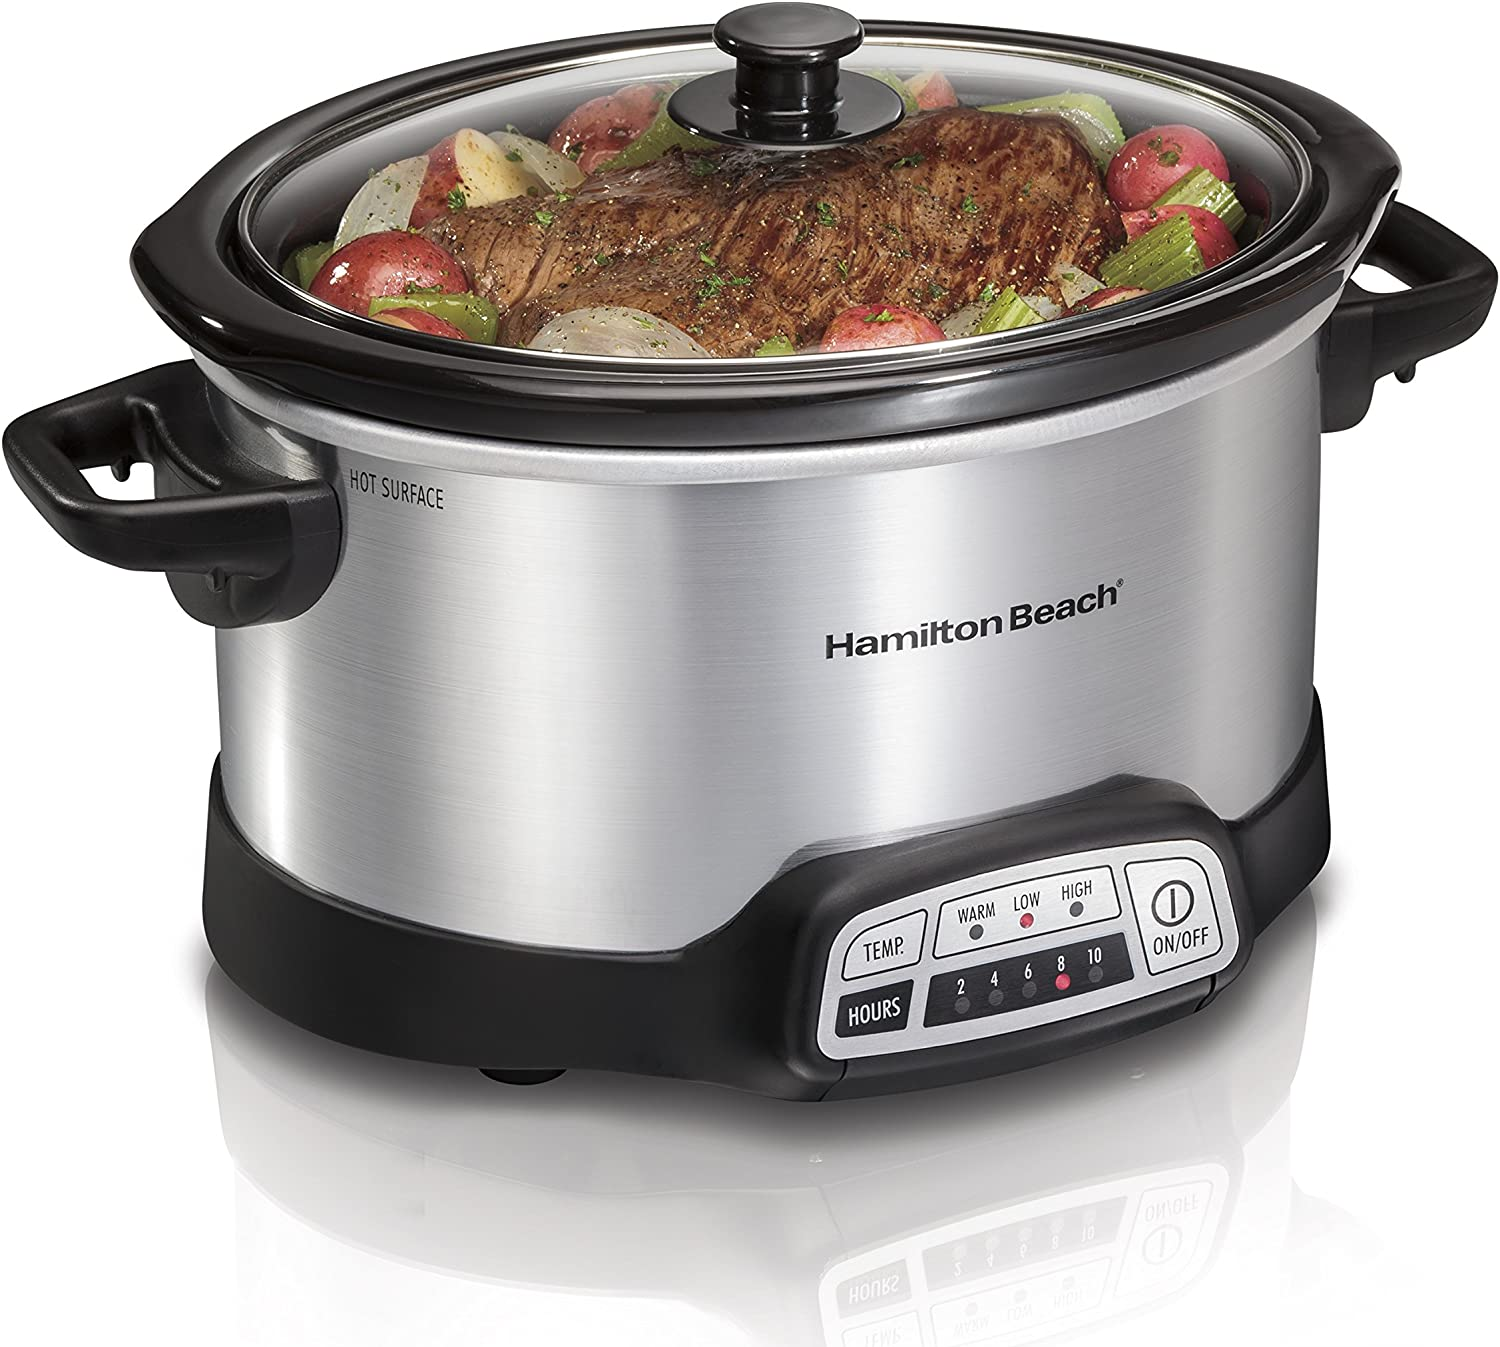 Hamilton Beach 4-Quart Programmable Slow Cooker With Dishwasher-Safe Crock and Lid, Silver (33443)